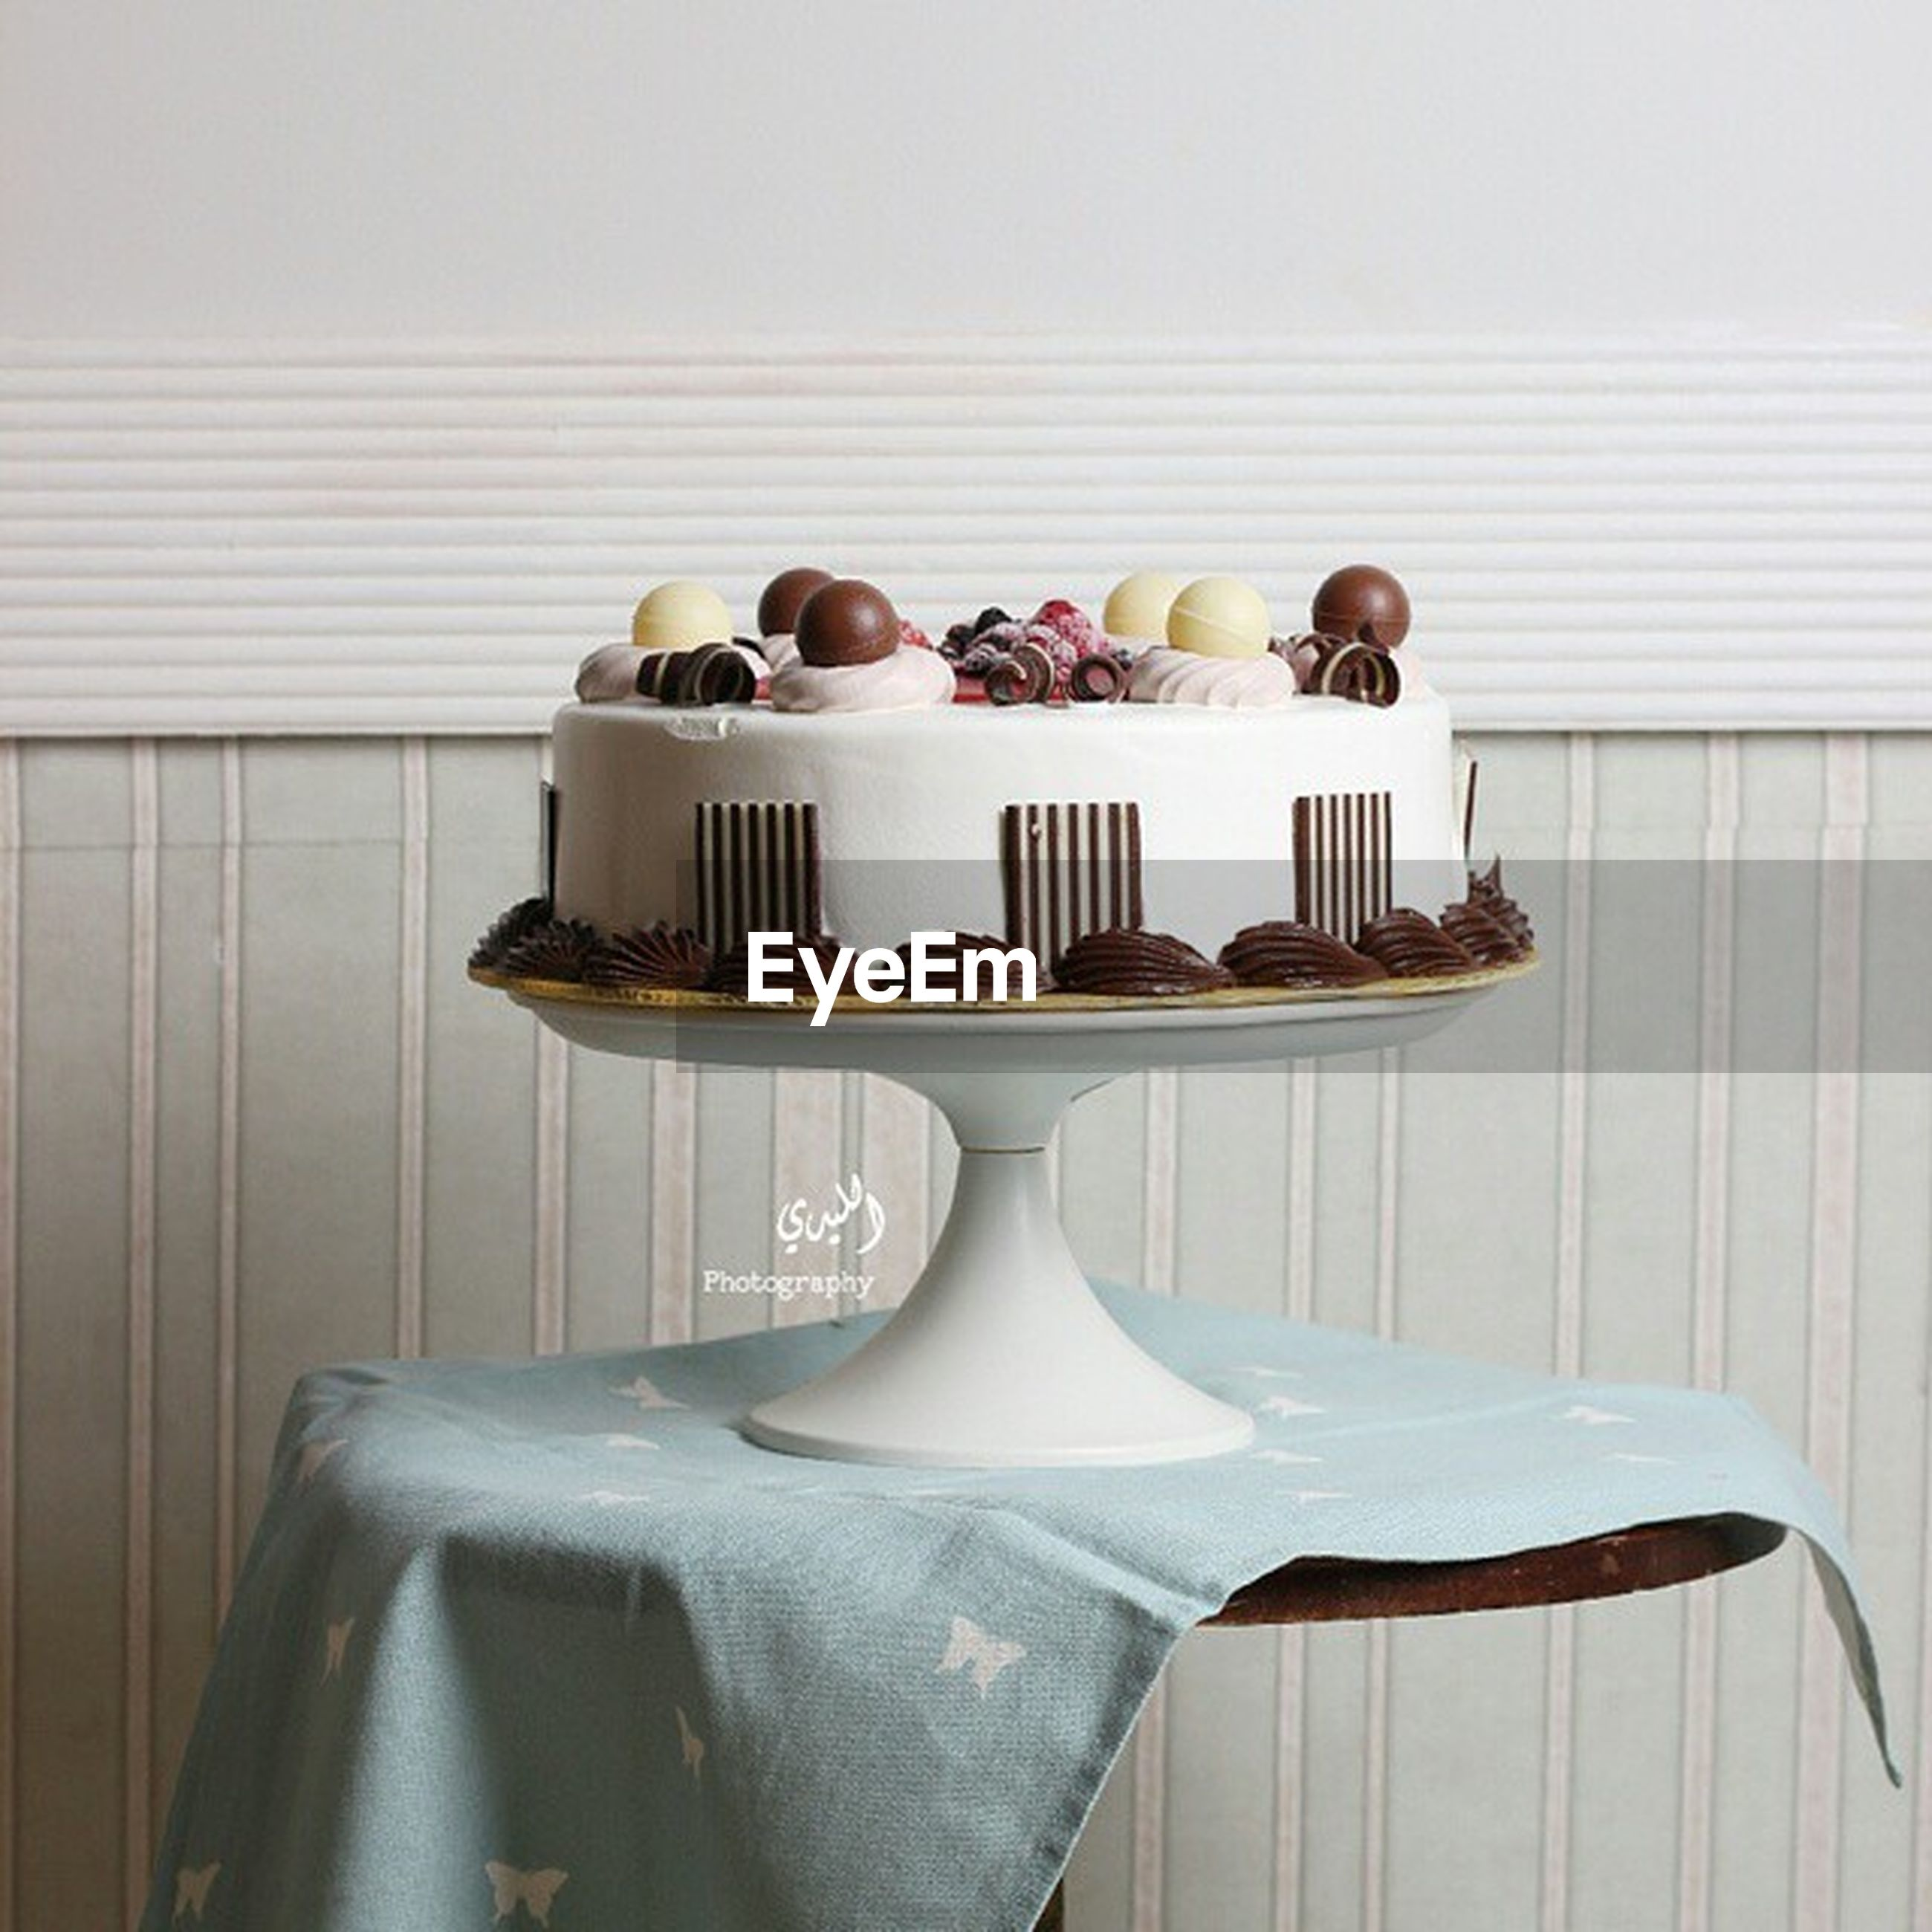 indoors, food and drink, still life, table, sweet food, food, white color, glass - material, window, dessert, in a row, close-up, day, unhealthy eating, indulgence, plate, no people, freshness, ready-to-eat, home interior